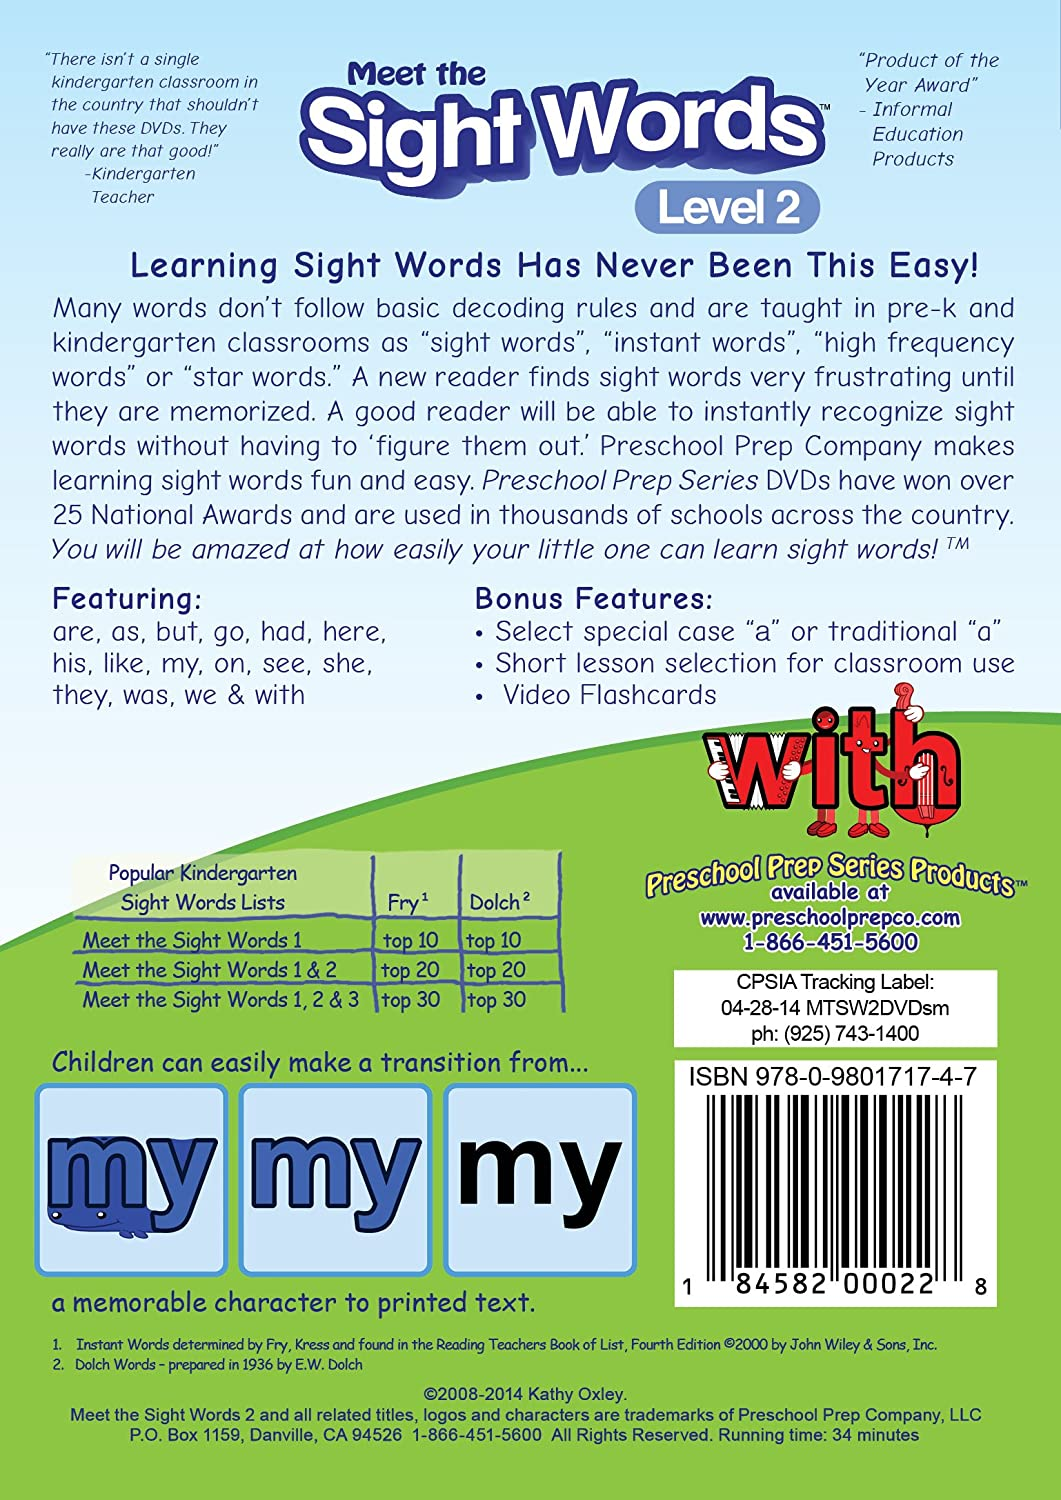 Amazon.com: Meet the Sight Words 2: Preschool Prep Company: Movies & TV